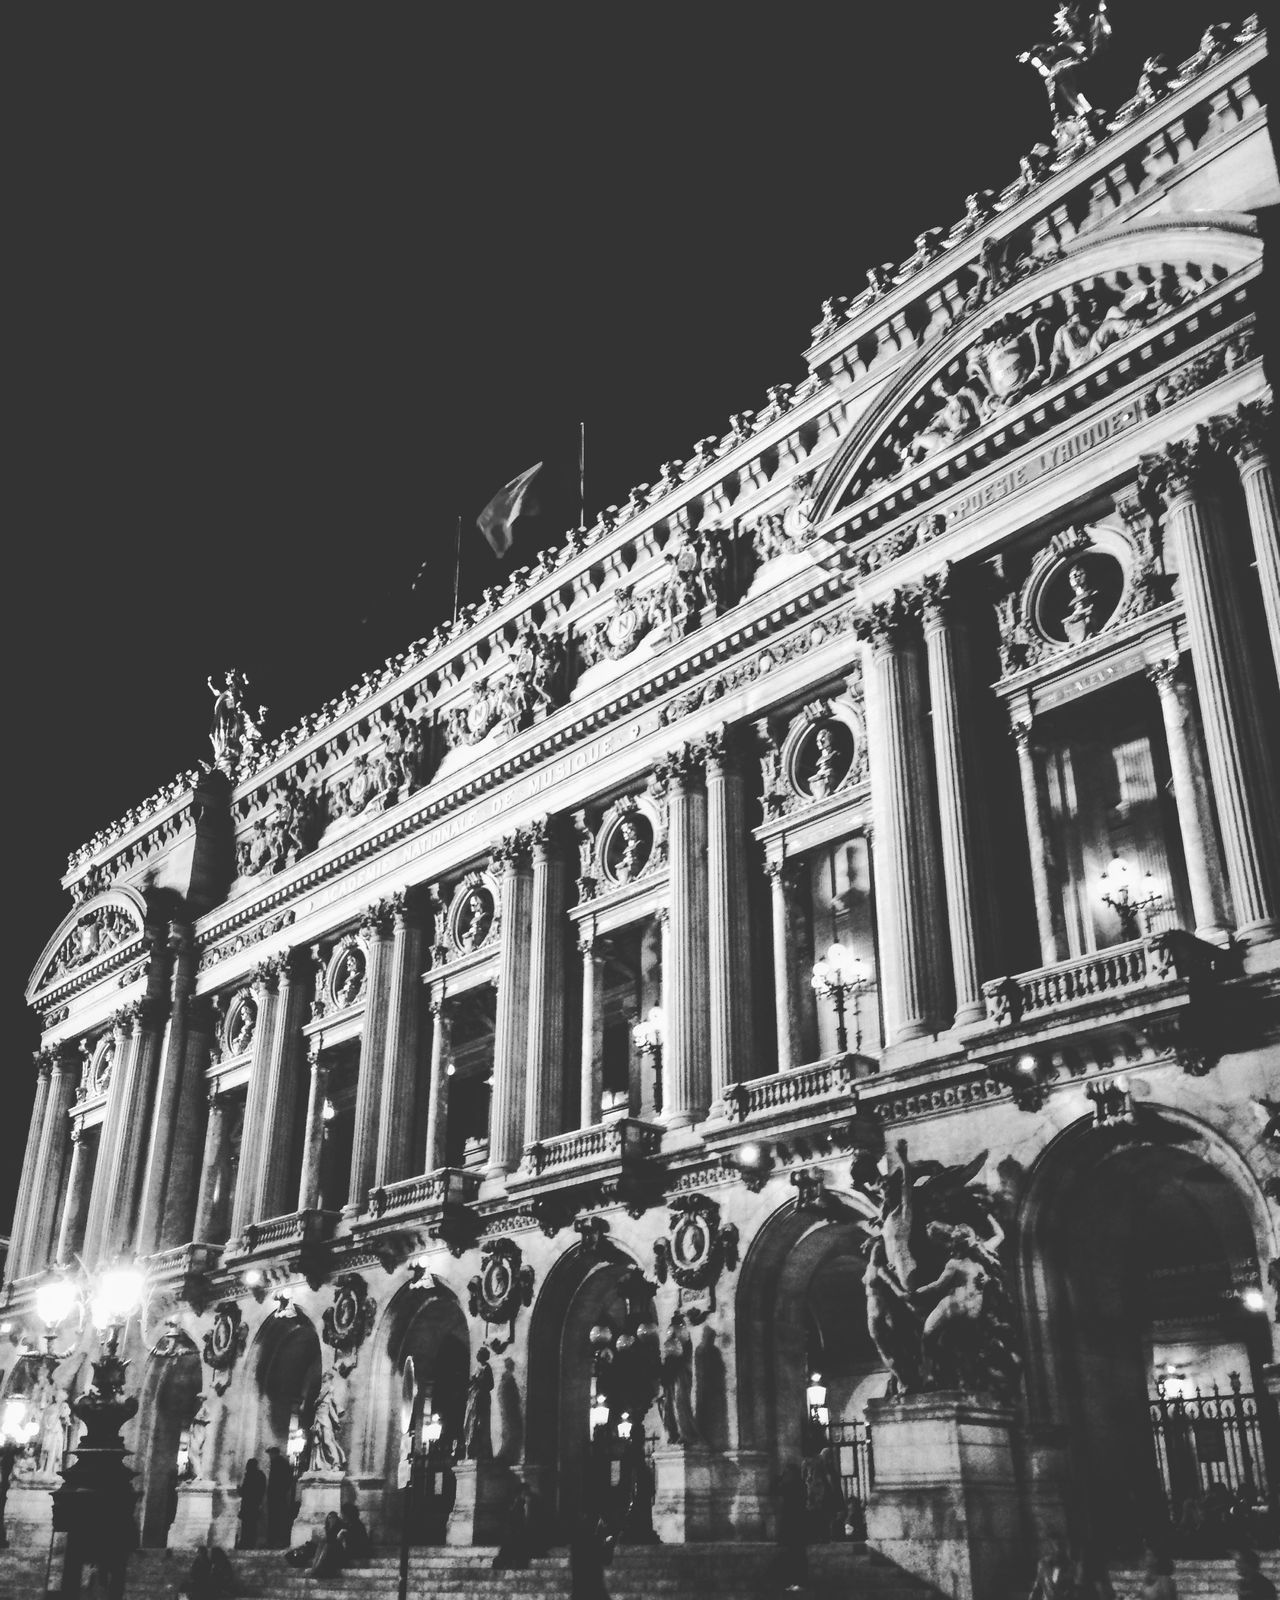 Paris Nighttime Palais Garnier Opera Theatre Ópera De Paris City Of Blinding Lights Ville Lumière Urban Landscape Historical Building Decouvrez Paris Taking Photos NightOut✨ Place De L'opéra